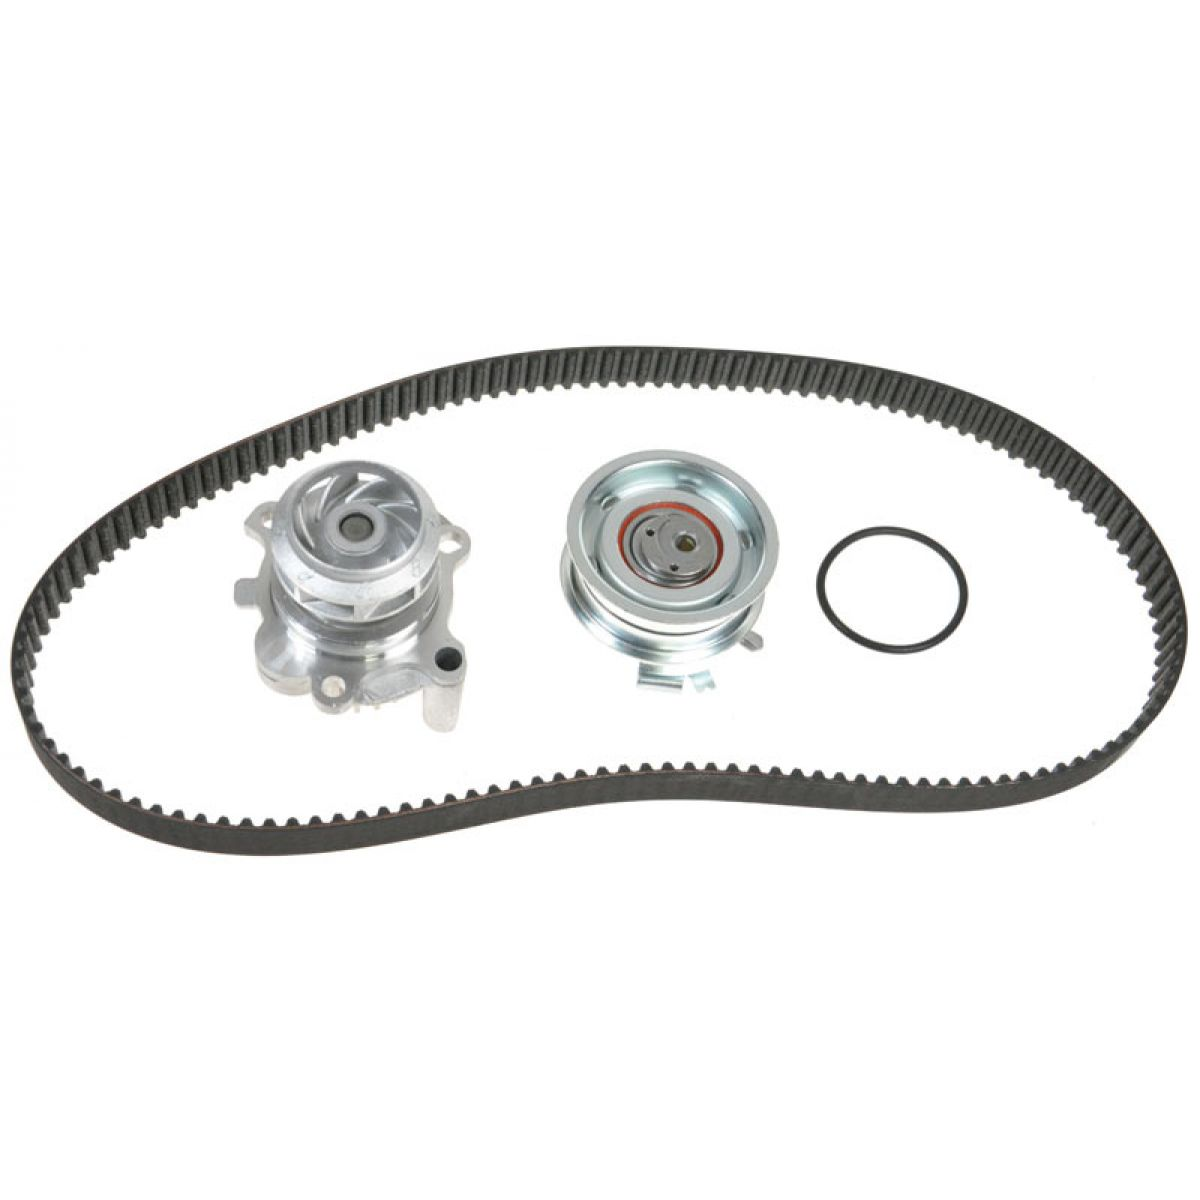 gates timing belt kit  u0026 water pump set for vw beetle jetta